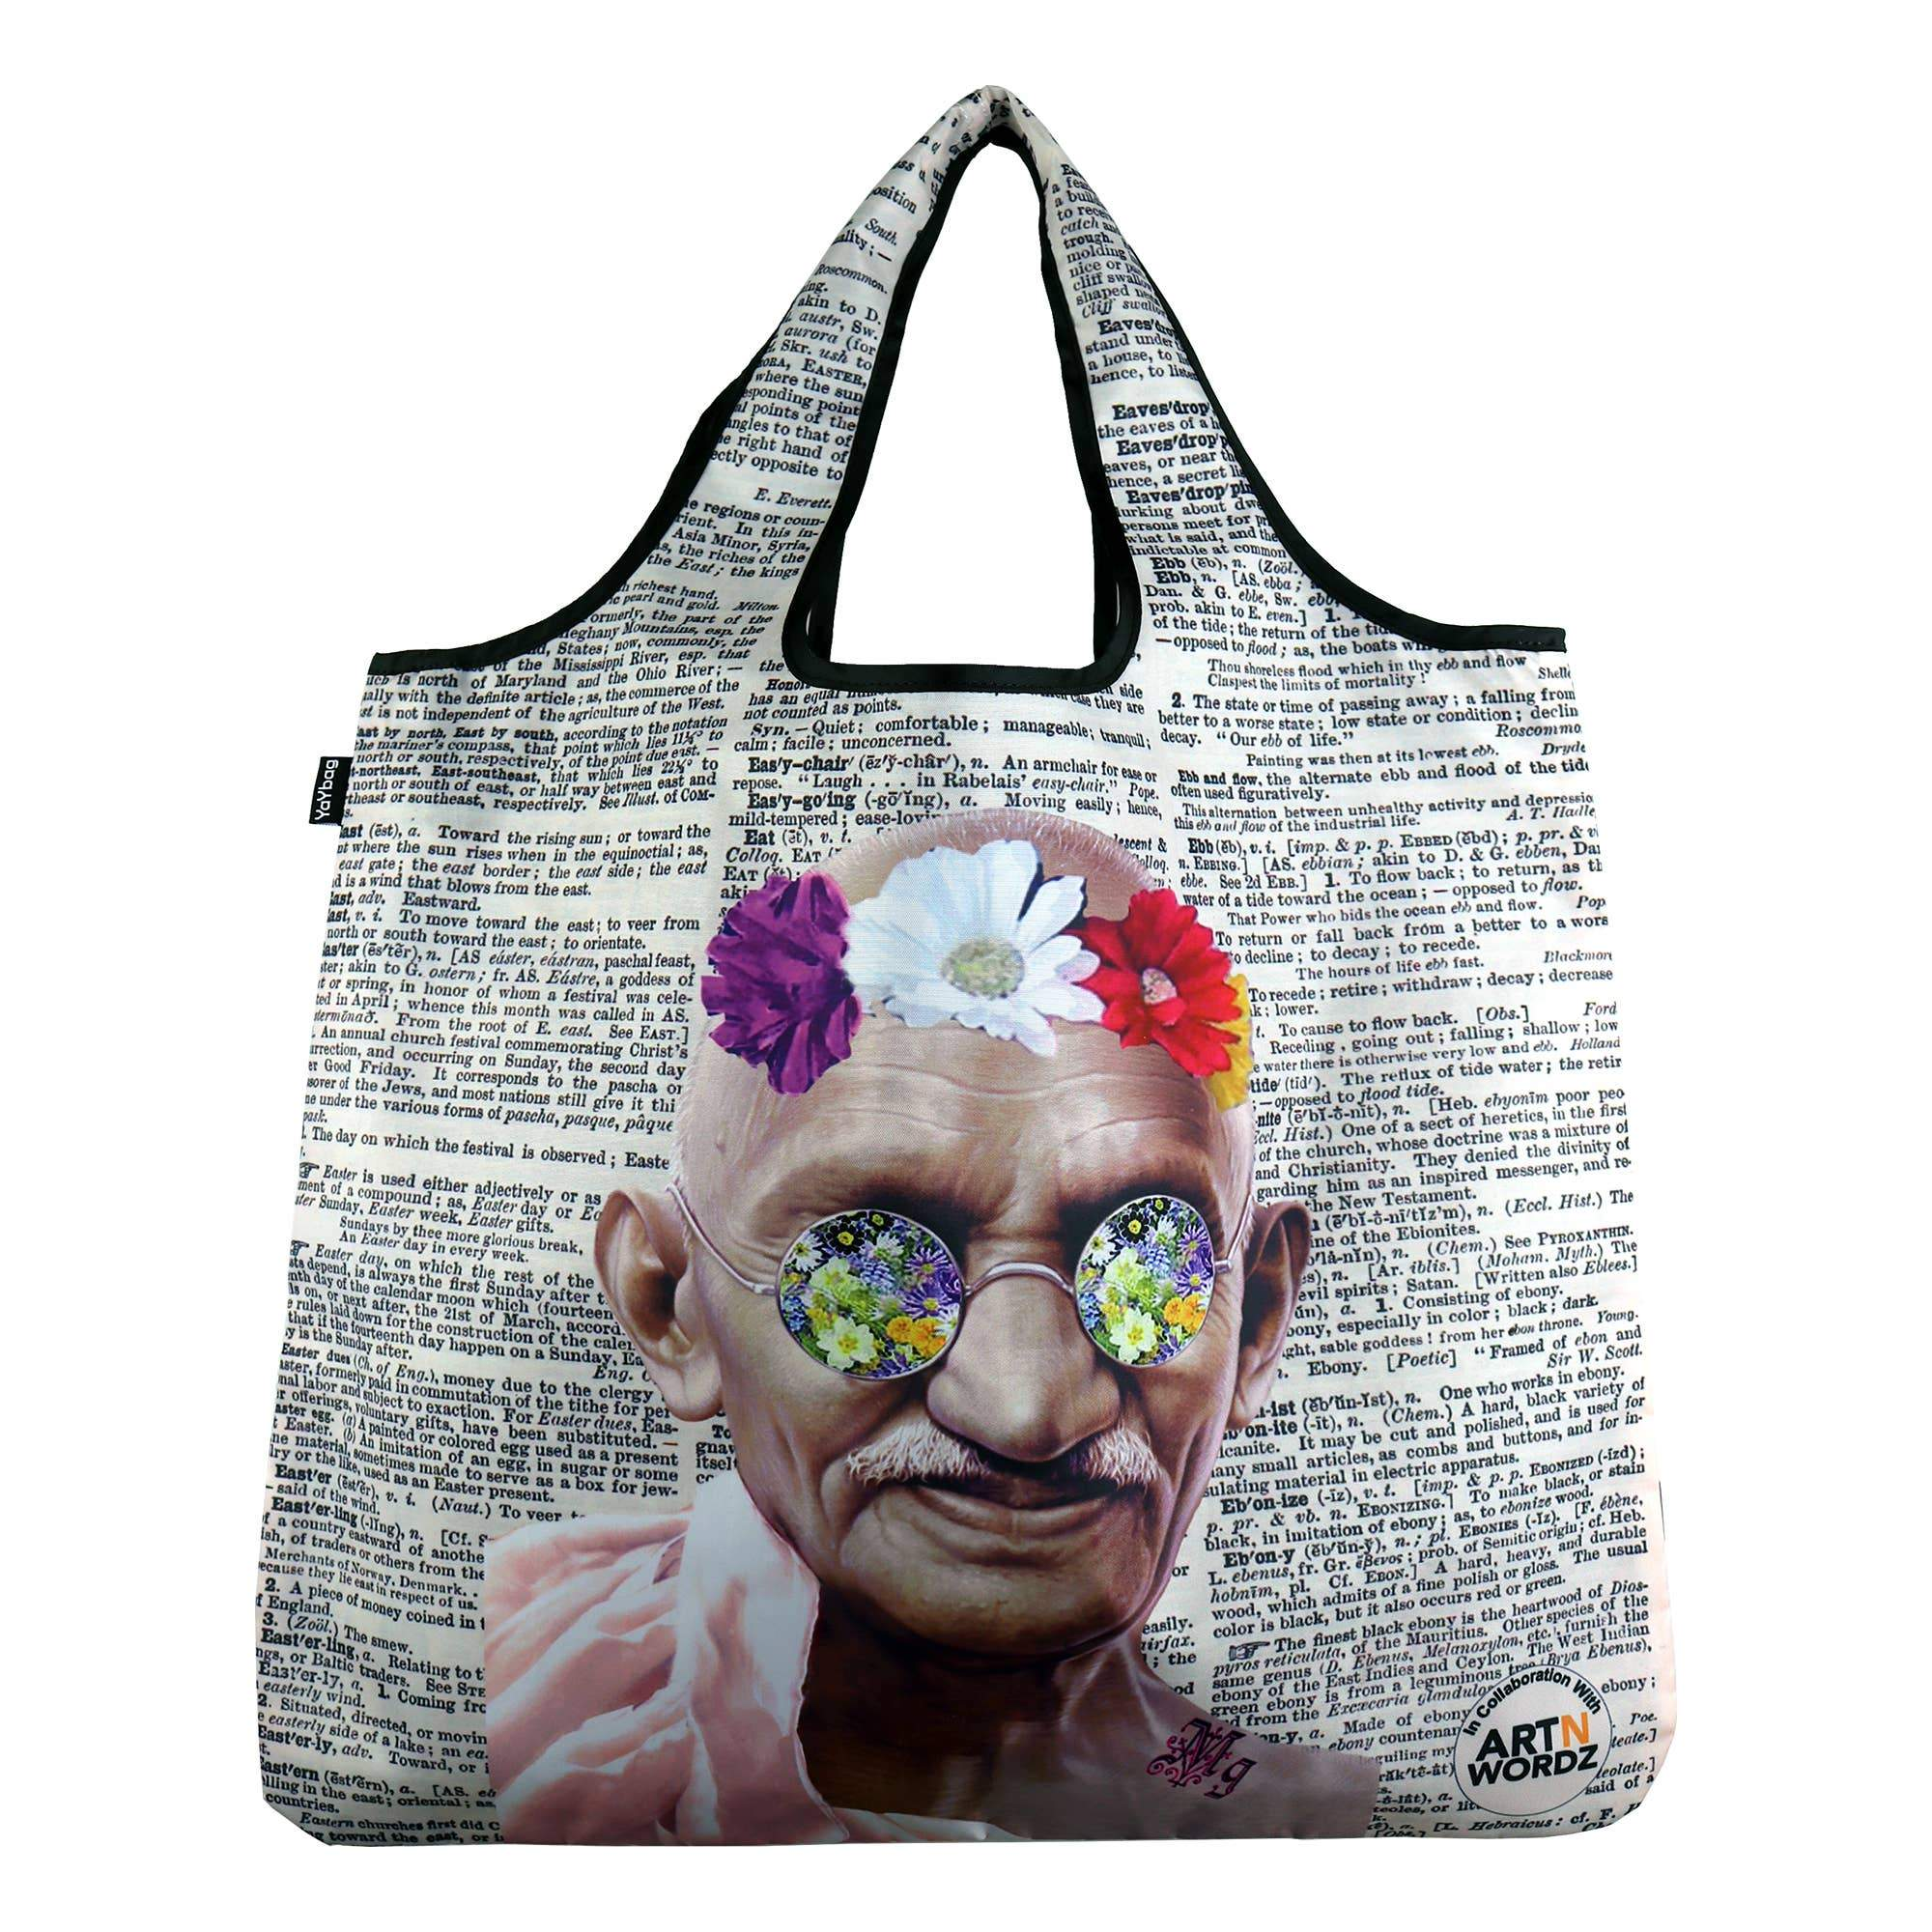 Buy Gandhi Flower YaYbag Original Reusable Bags from Walking Pants Curiosities, the Most un-General Gift Store in Downtown Memphis, Tennessee!